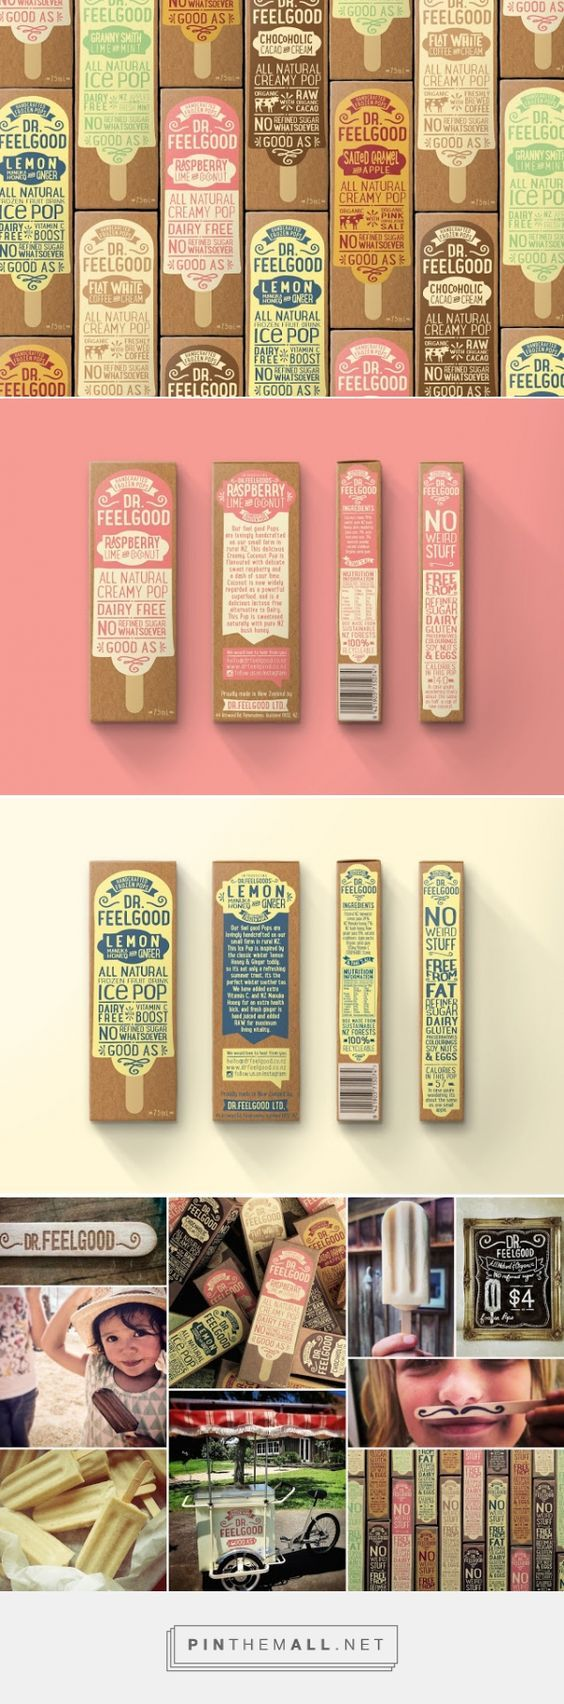 Ice Cream Packaging Design Curated by Little Buddha